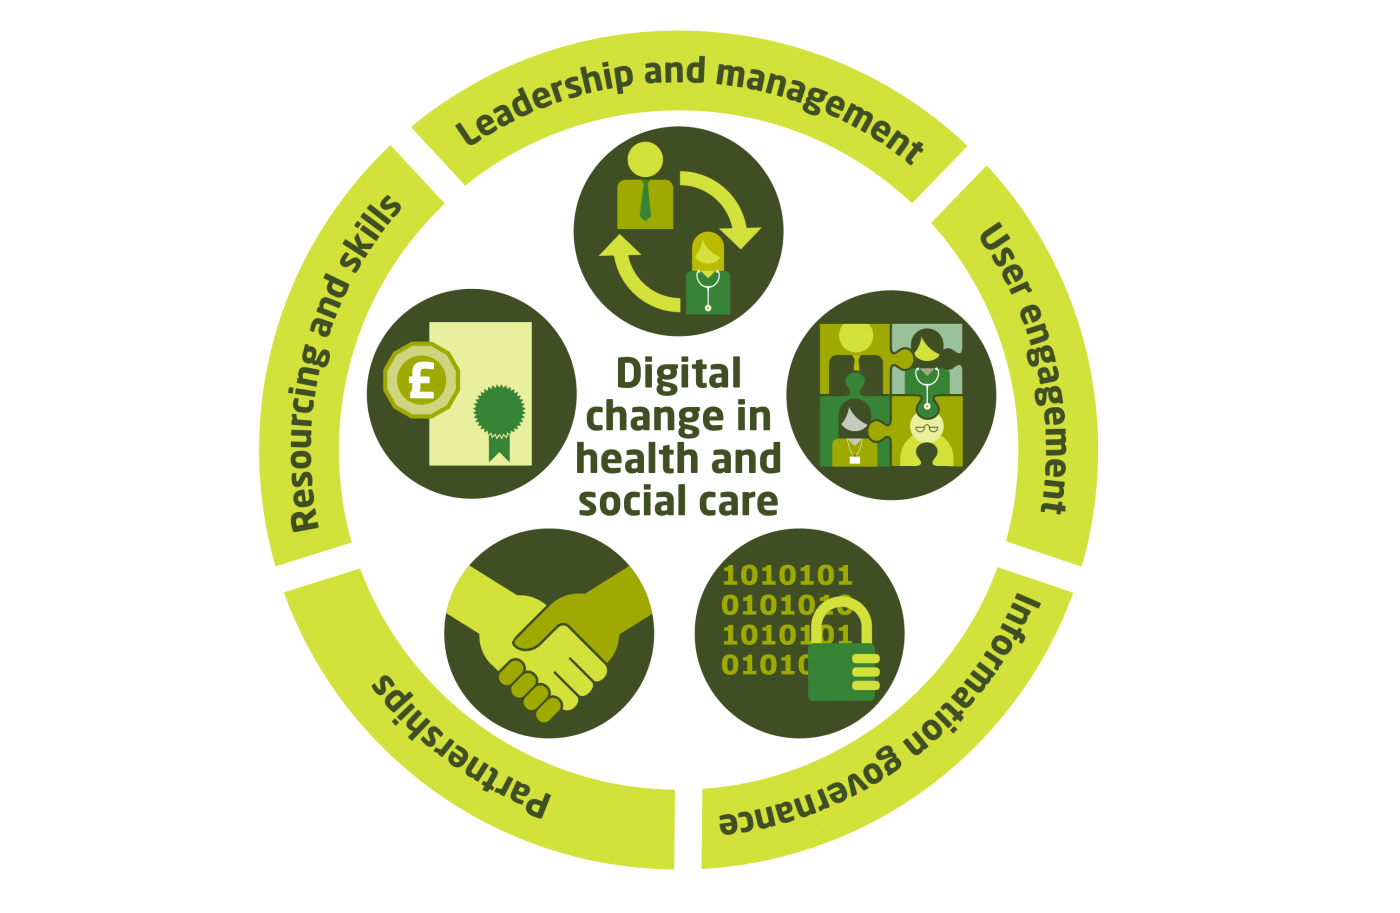 Key themes in successful digital change management